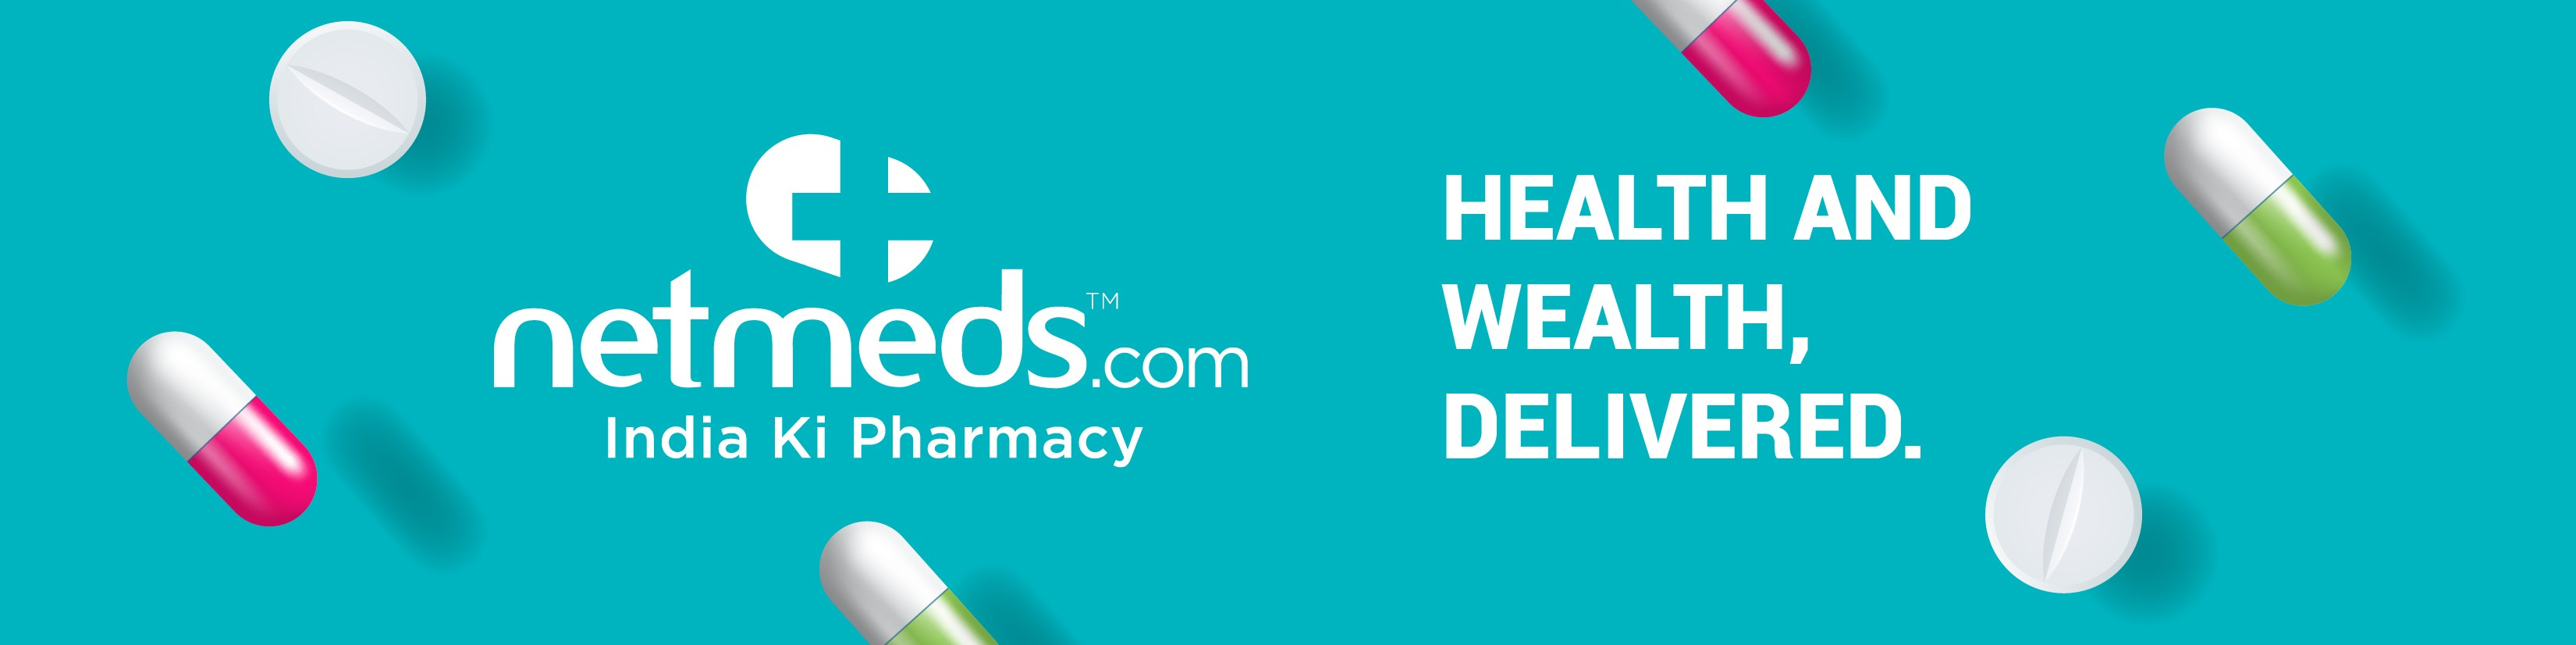 netmeds.com careers and current employee profiles | find referrals | linkedin